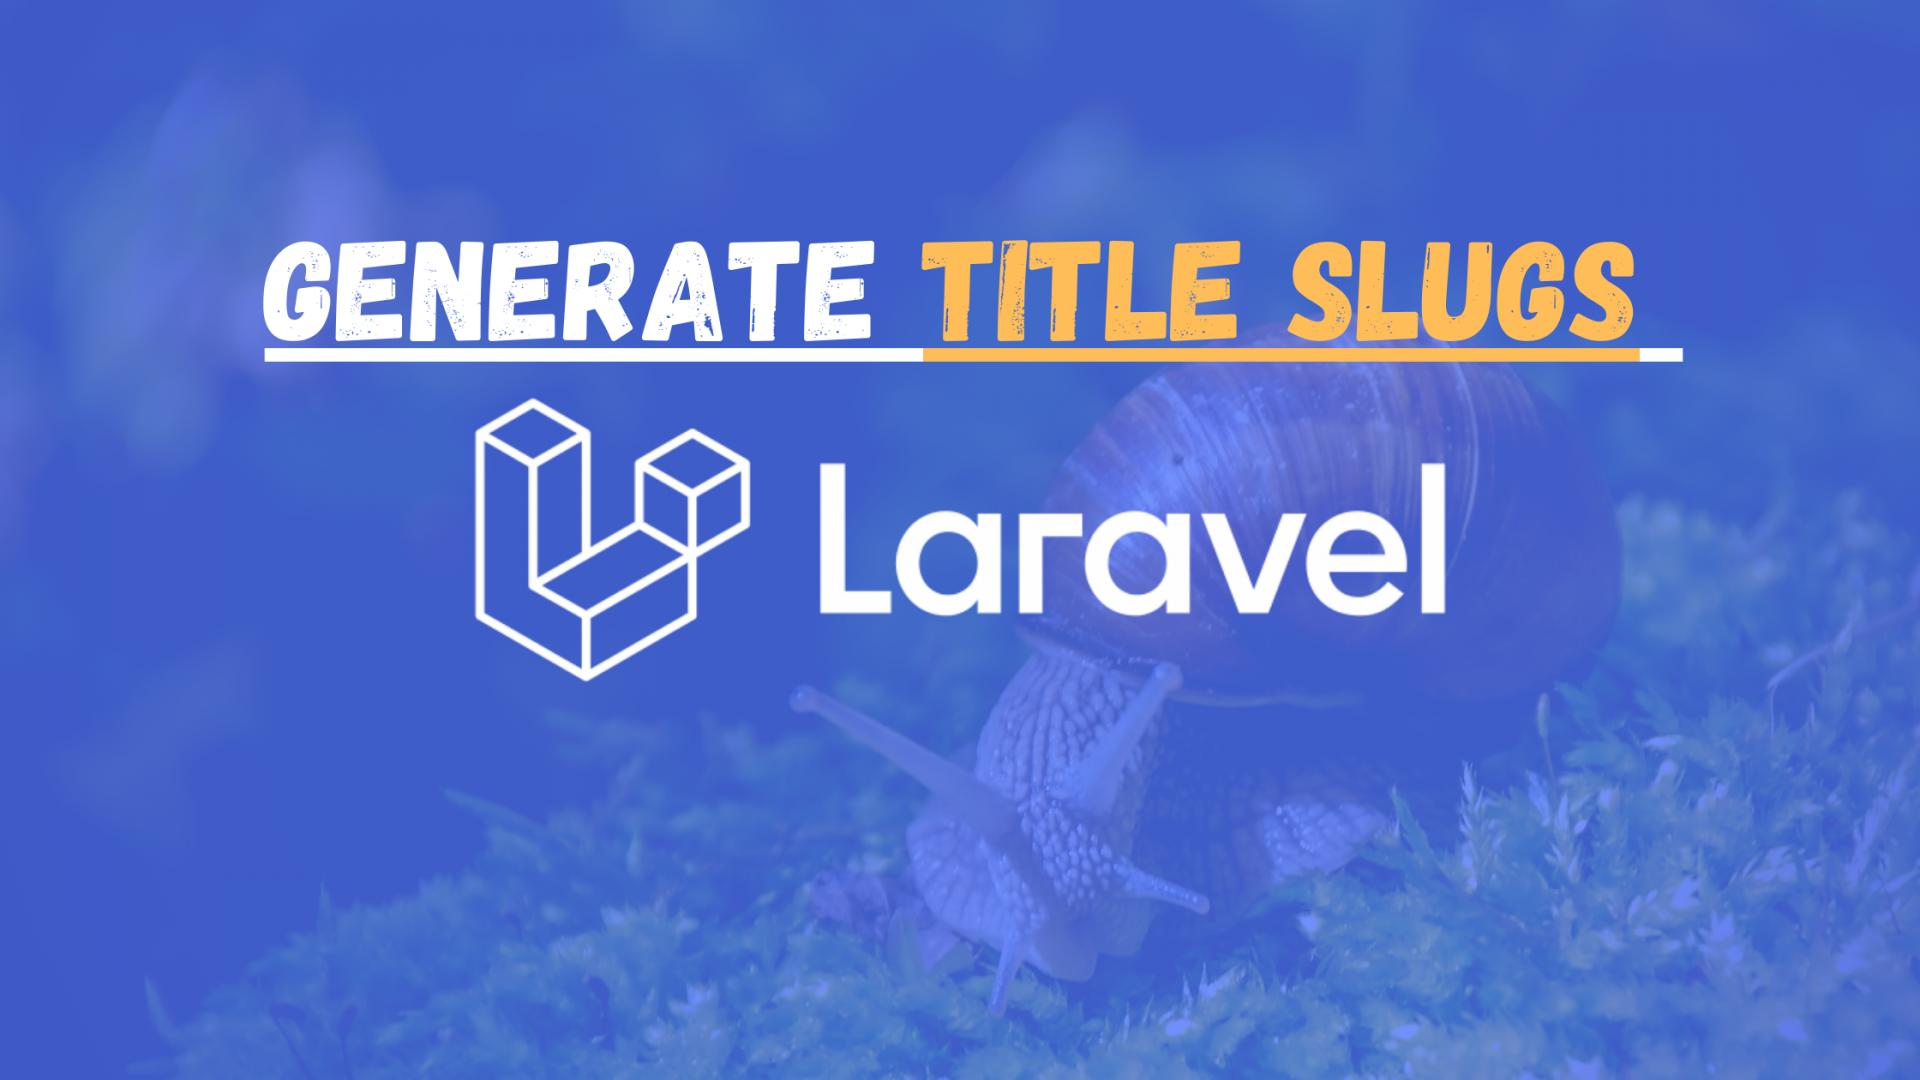 How to generate title slugs in Laravel?